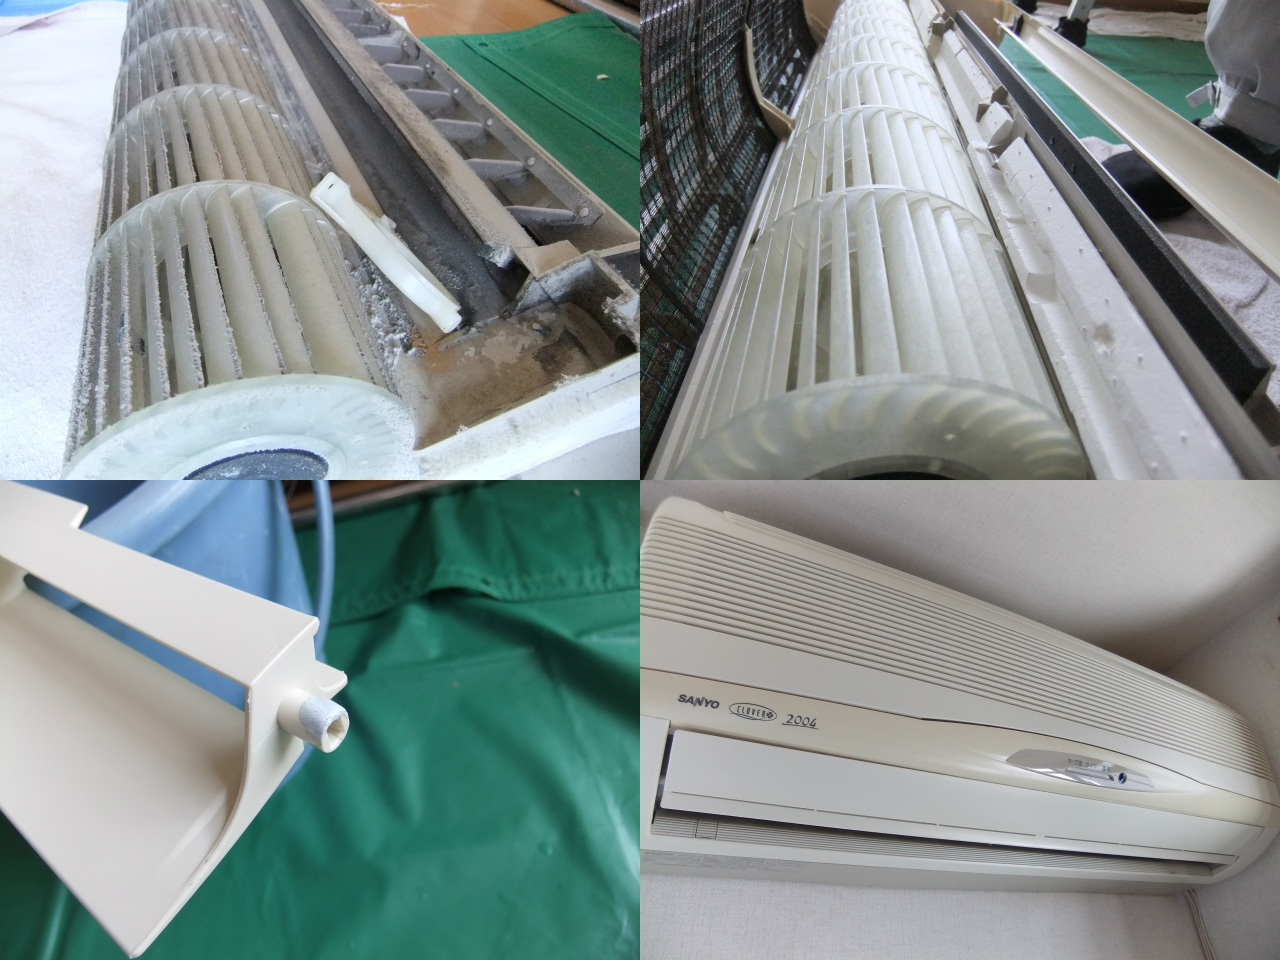 http://ajras.net/images/120704-aircon2B.jpg